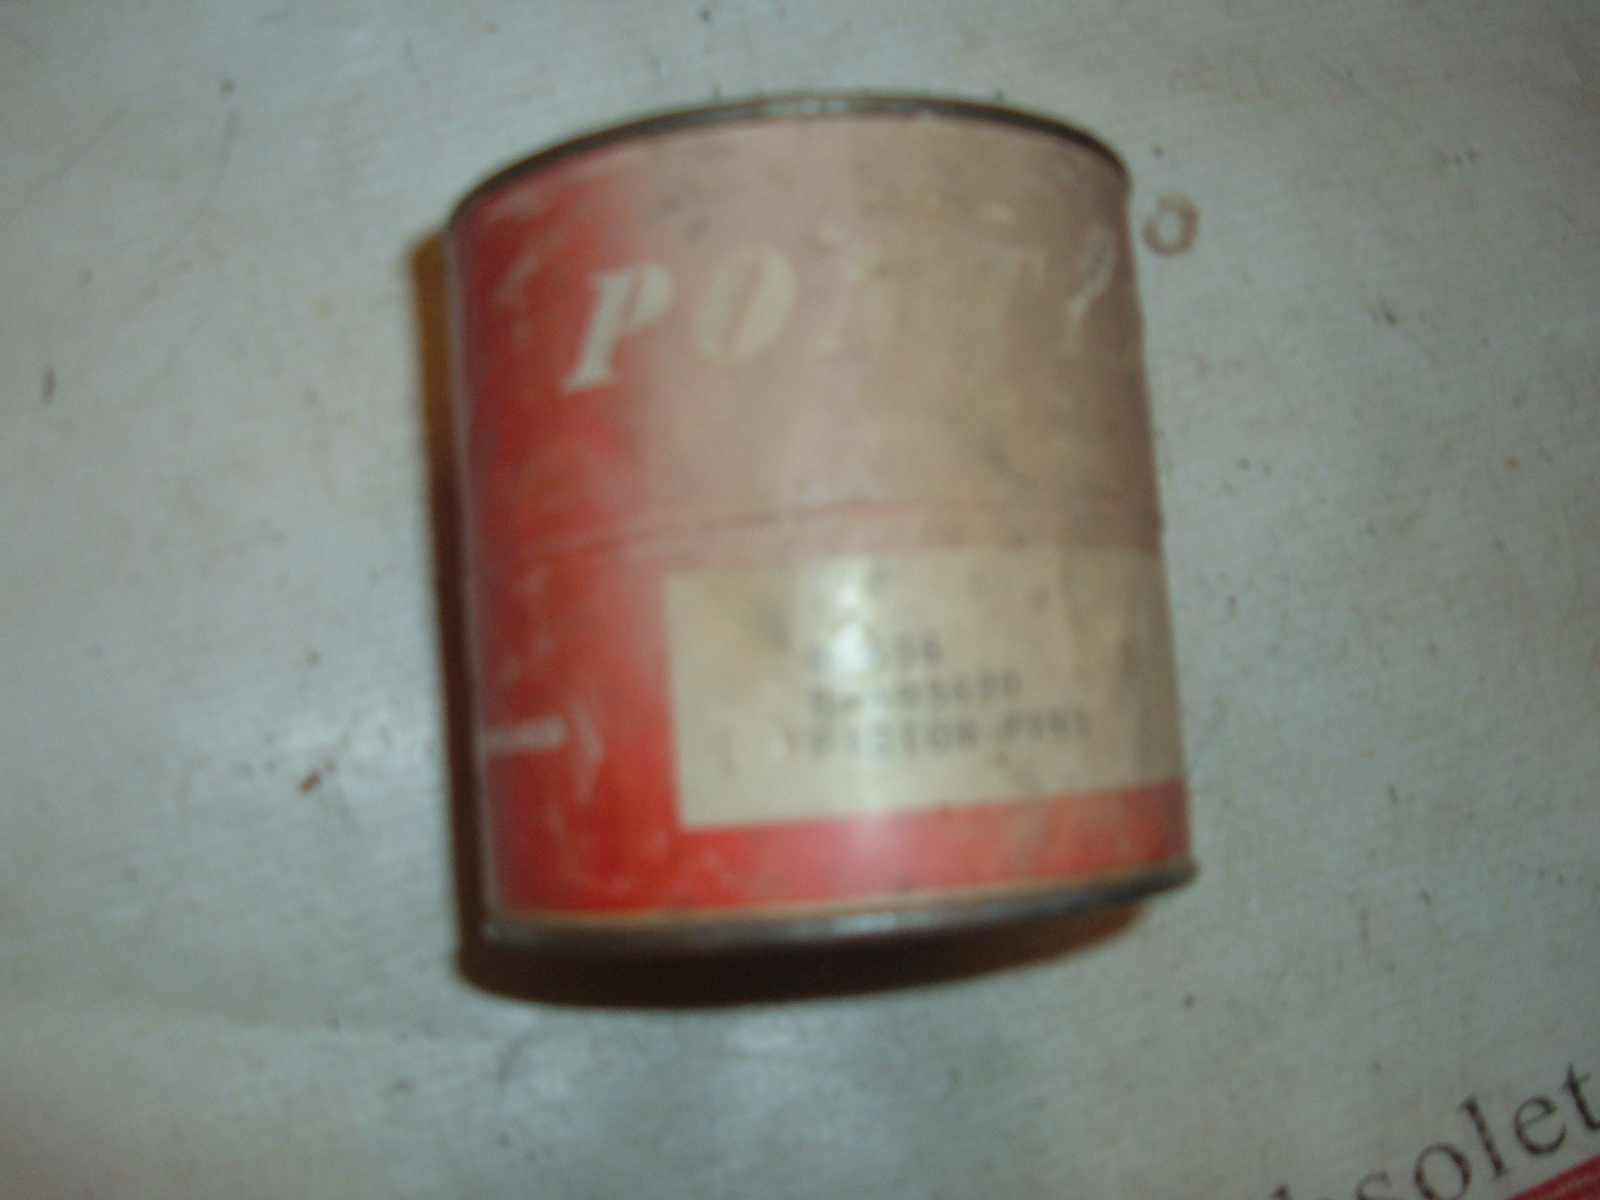 1933 34 35 36 37 38 39 40 41 42 4647 48 49 50 51 52 pontiac 8 cyl piston pins nos gm 465620 (z 465620)